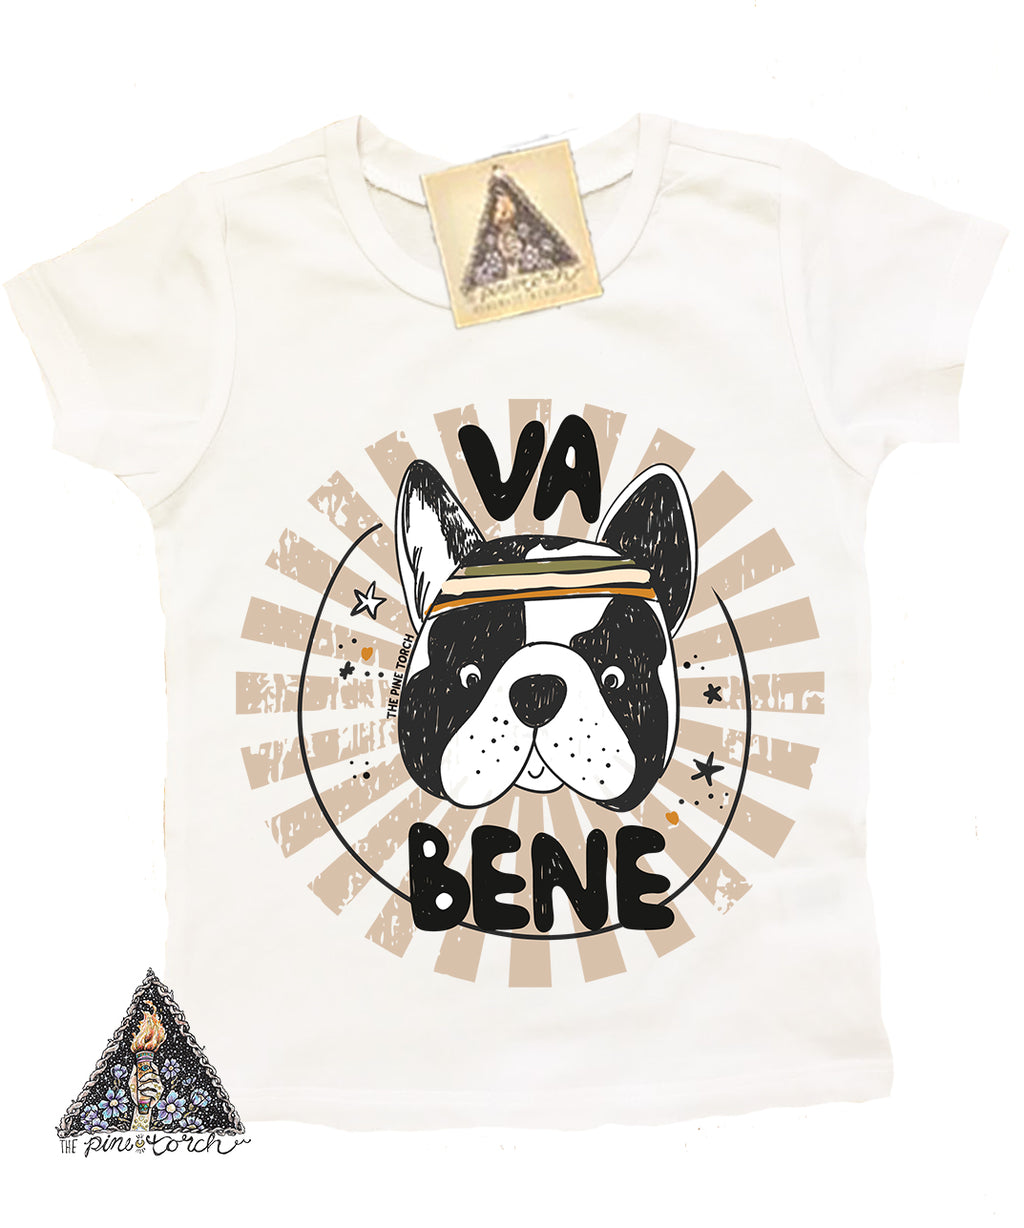 « VA BENE » KIDS TEE (5 colors)